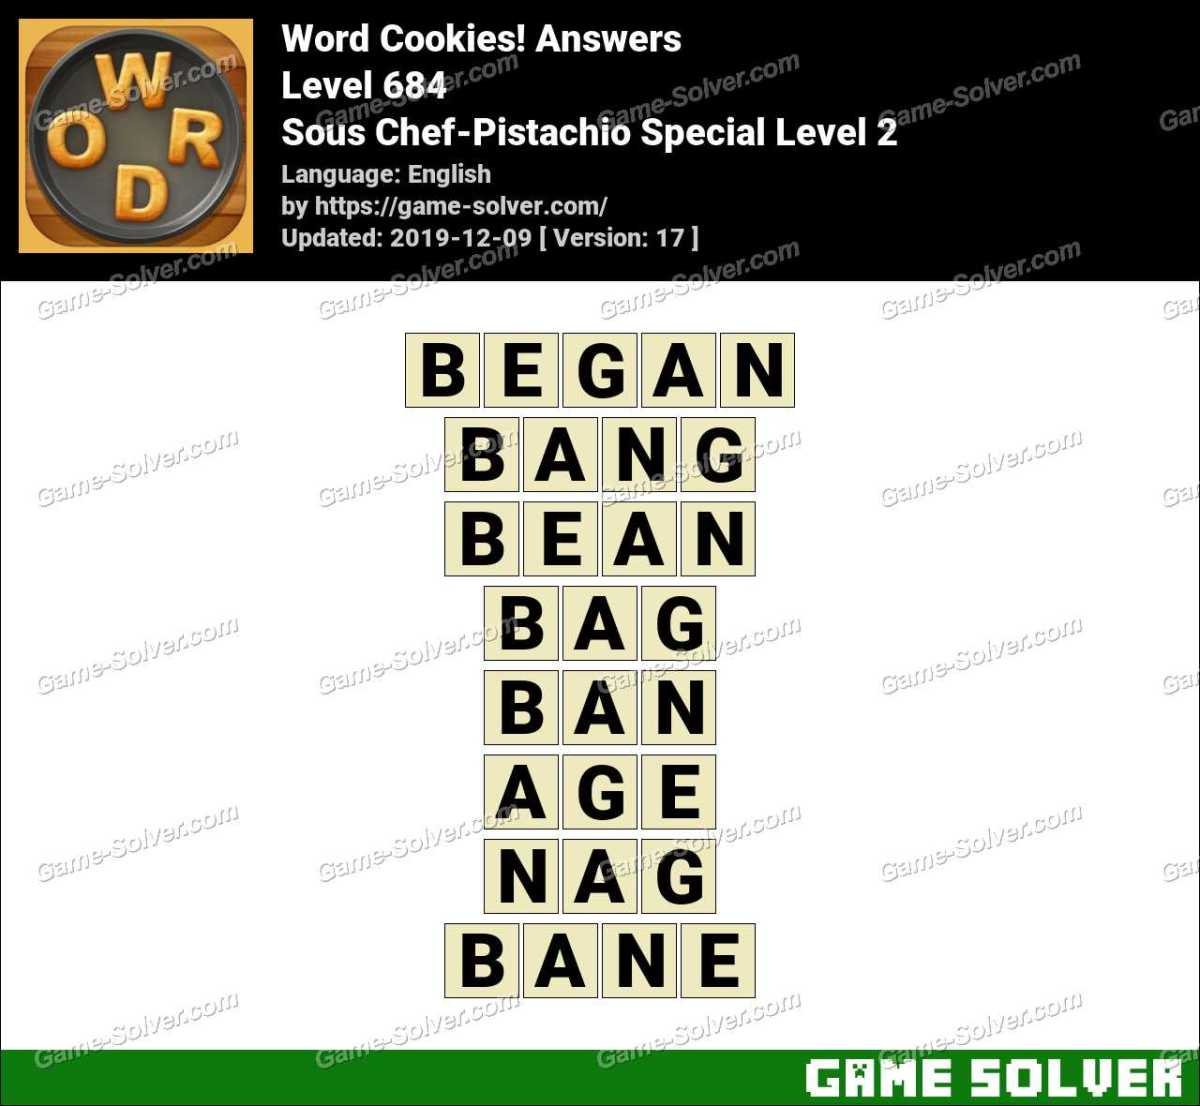 Word Cookies Sous Chef-Pistachio Special Level 2 Answers